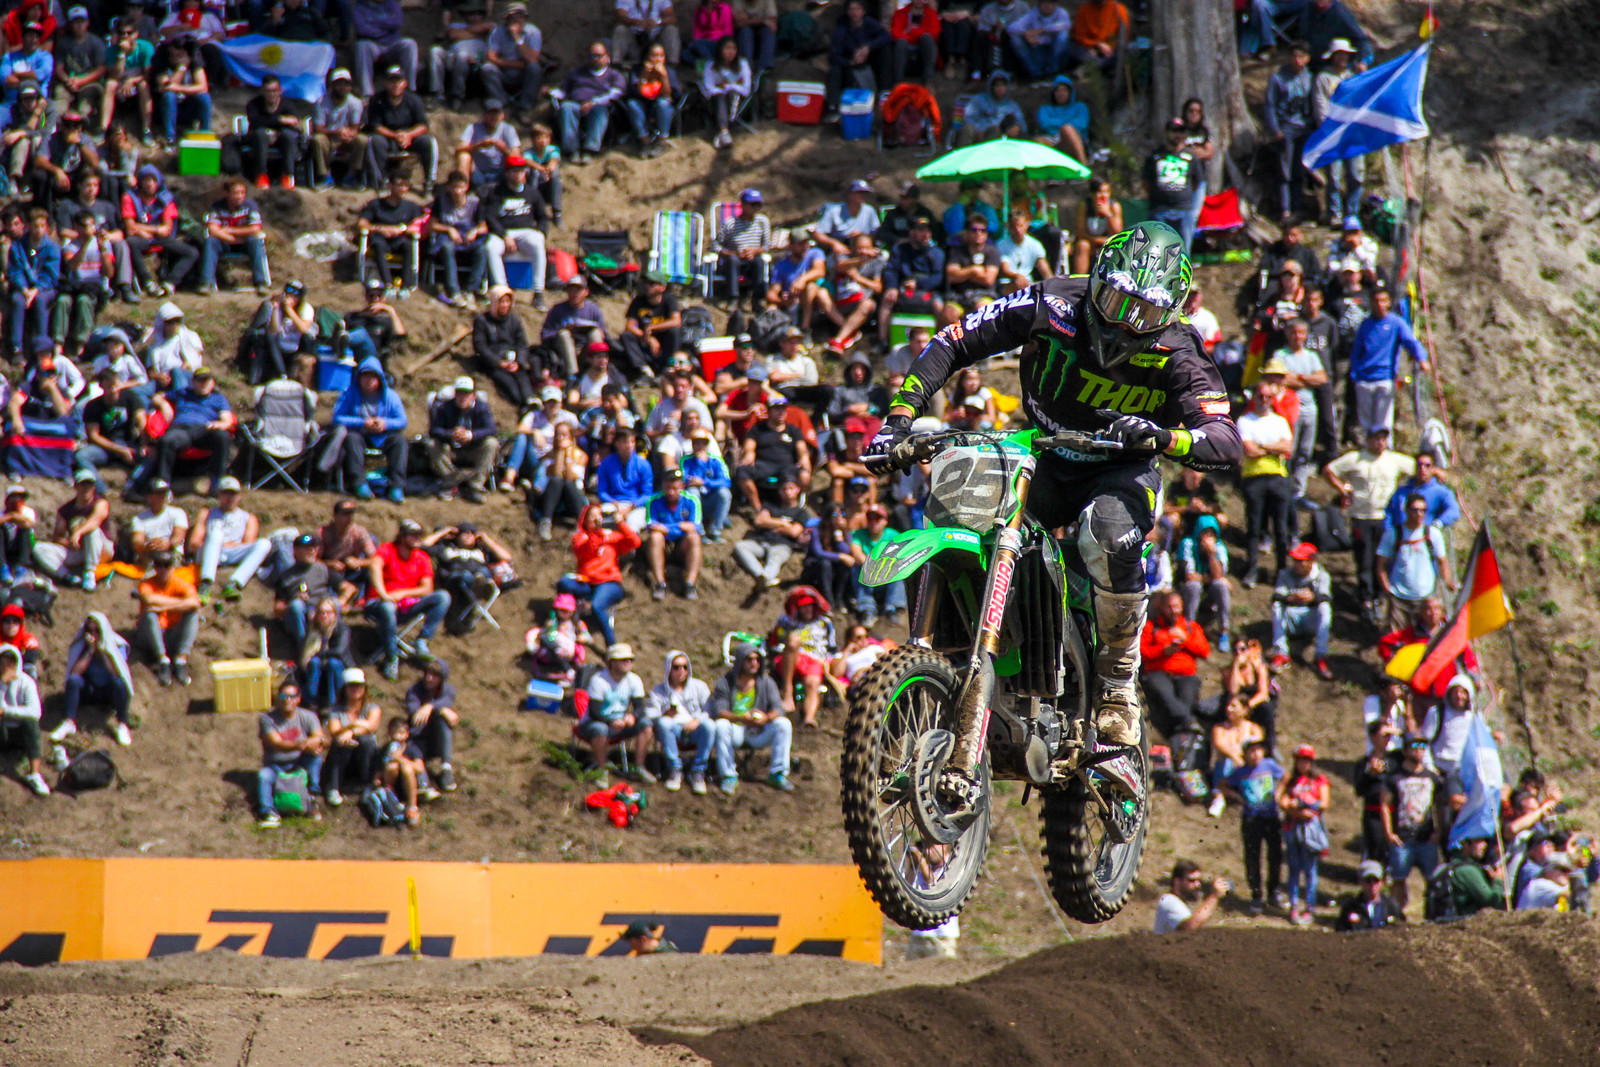 ...to Desalle's third overall.